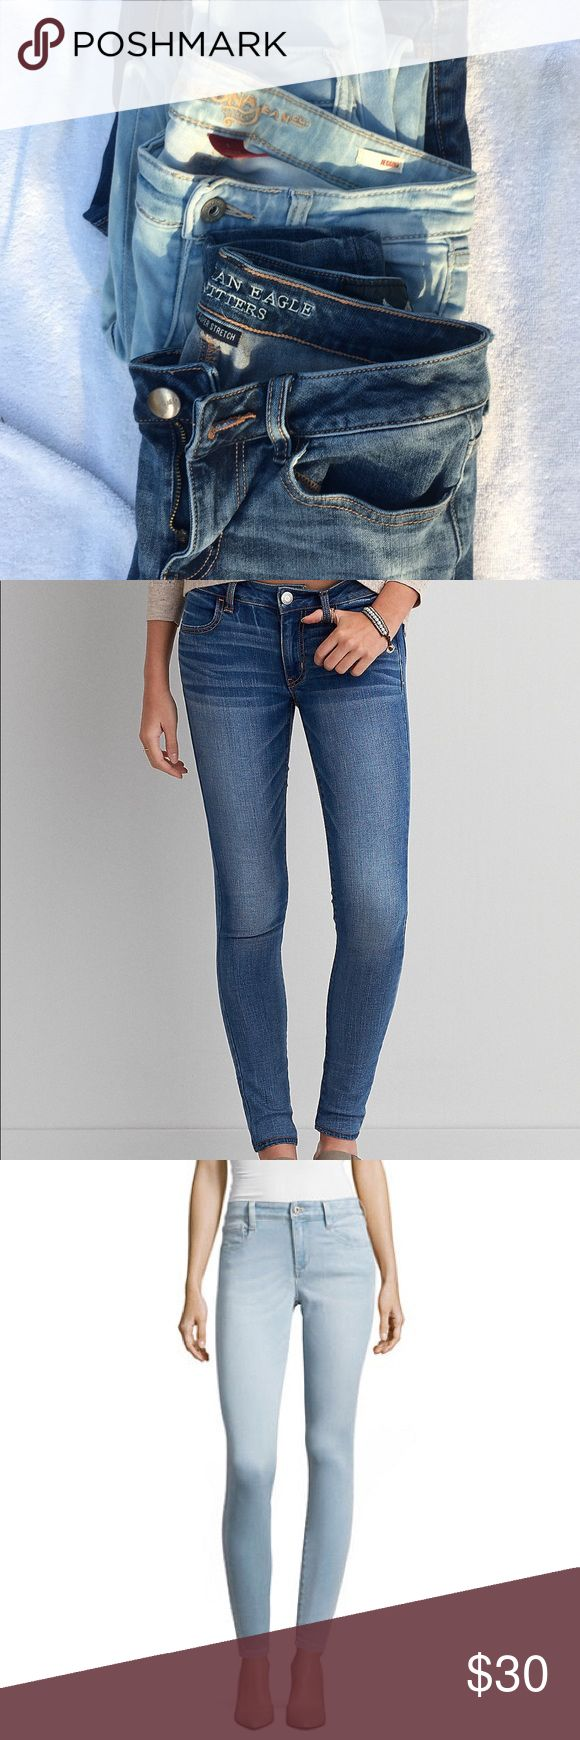 3 Pair Of Size 3 Jeans American Eagle Anne Taylor 3 pair of jeans for a great price Arizona Jeggings Light in color size 3 American Eagle Jeggings 360 Super Stretch Size 3 Anne Taylor Modern Fit Lindsay waist Size 2 American Eagle Outfitters Jeans